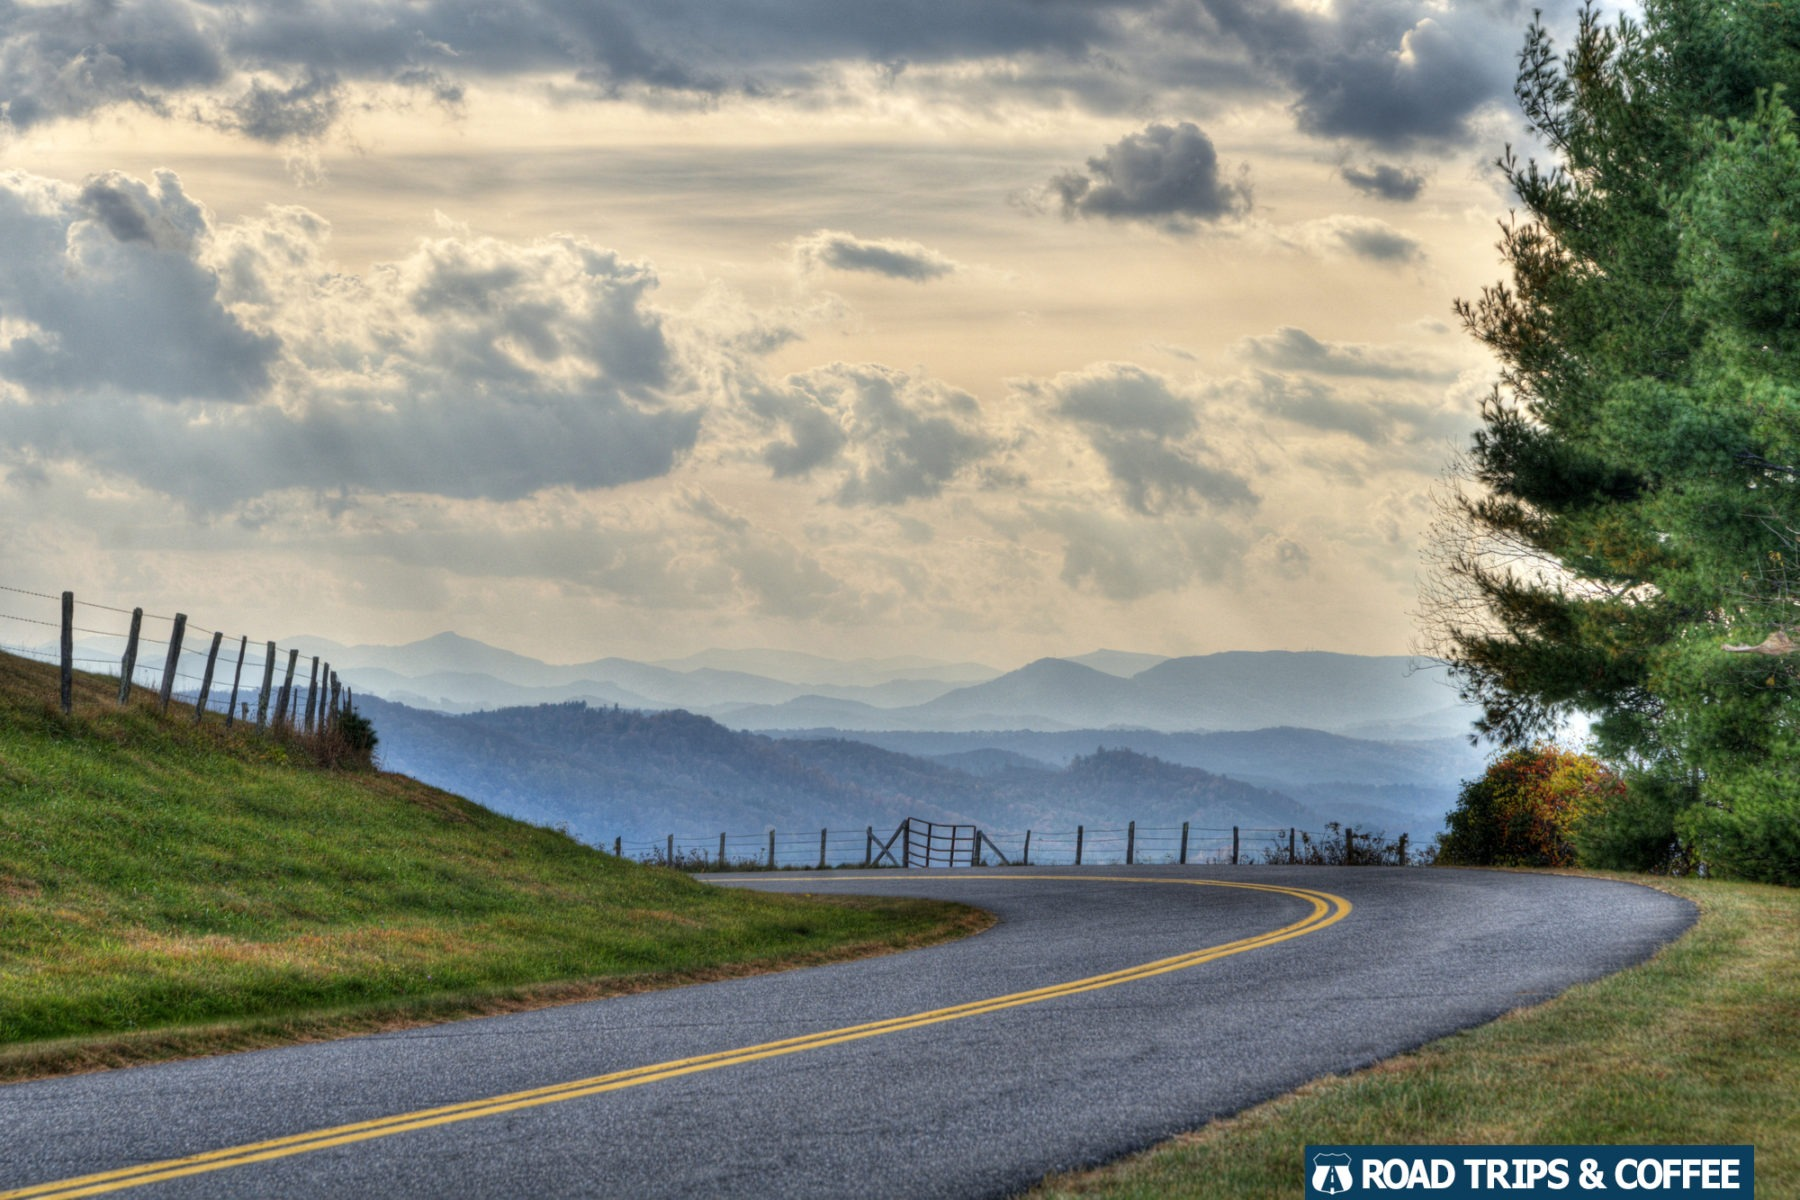 A slight curve on the Blue Ridge Parkway with a view of mountains in the distance in North Carolina.